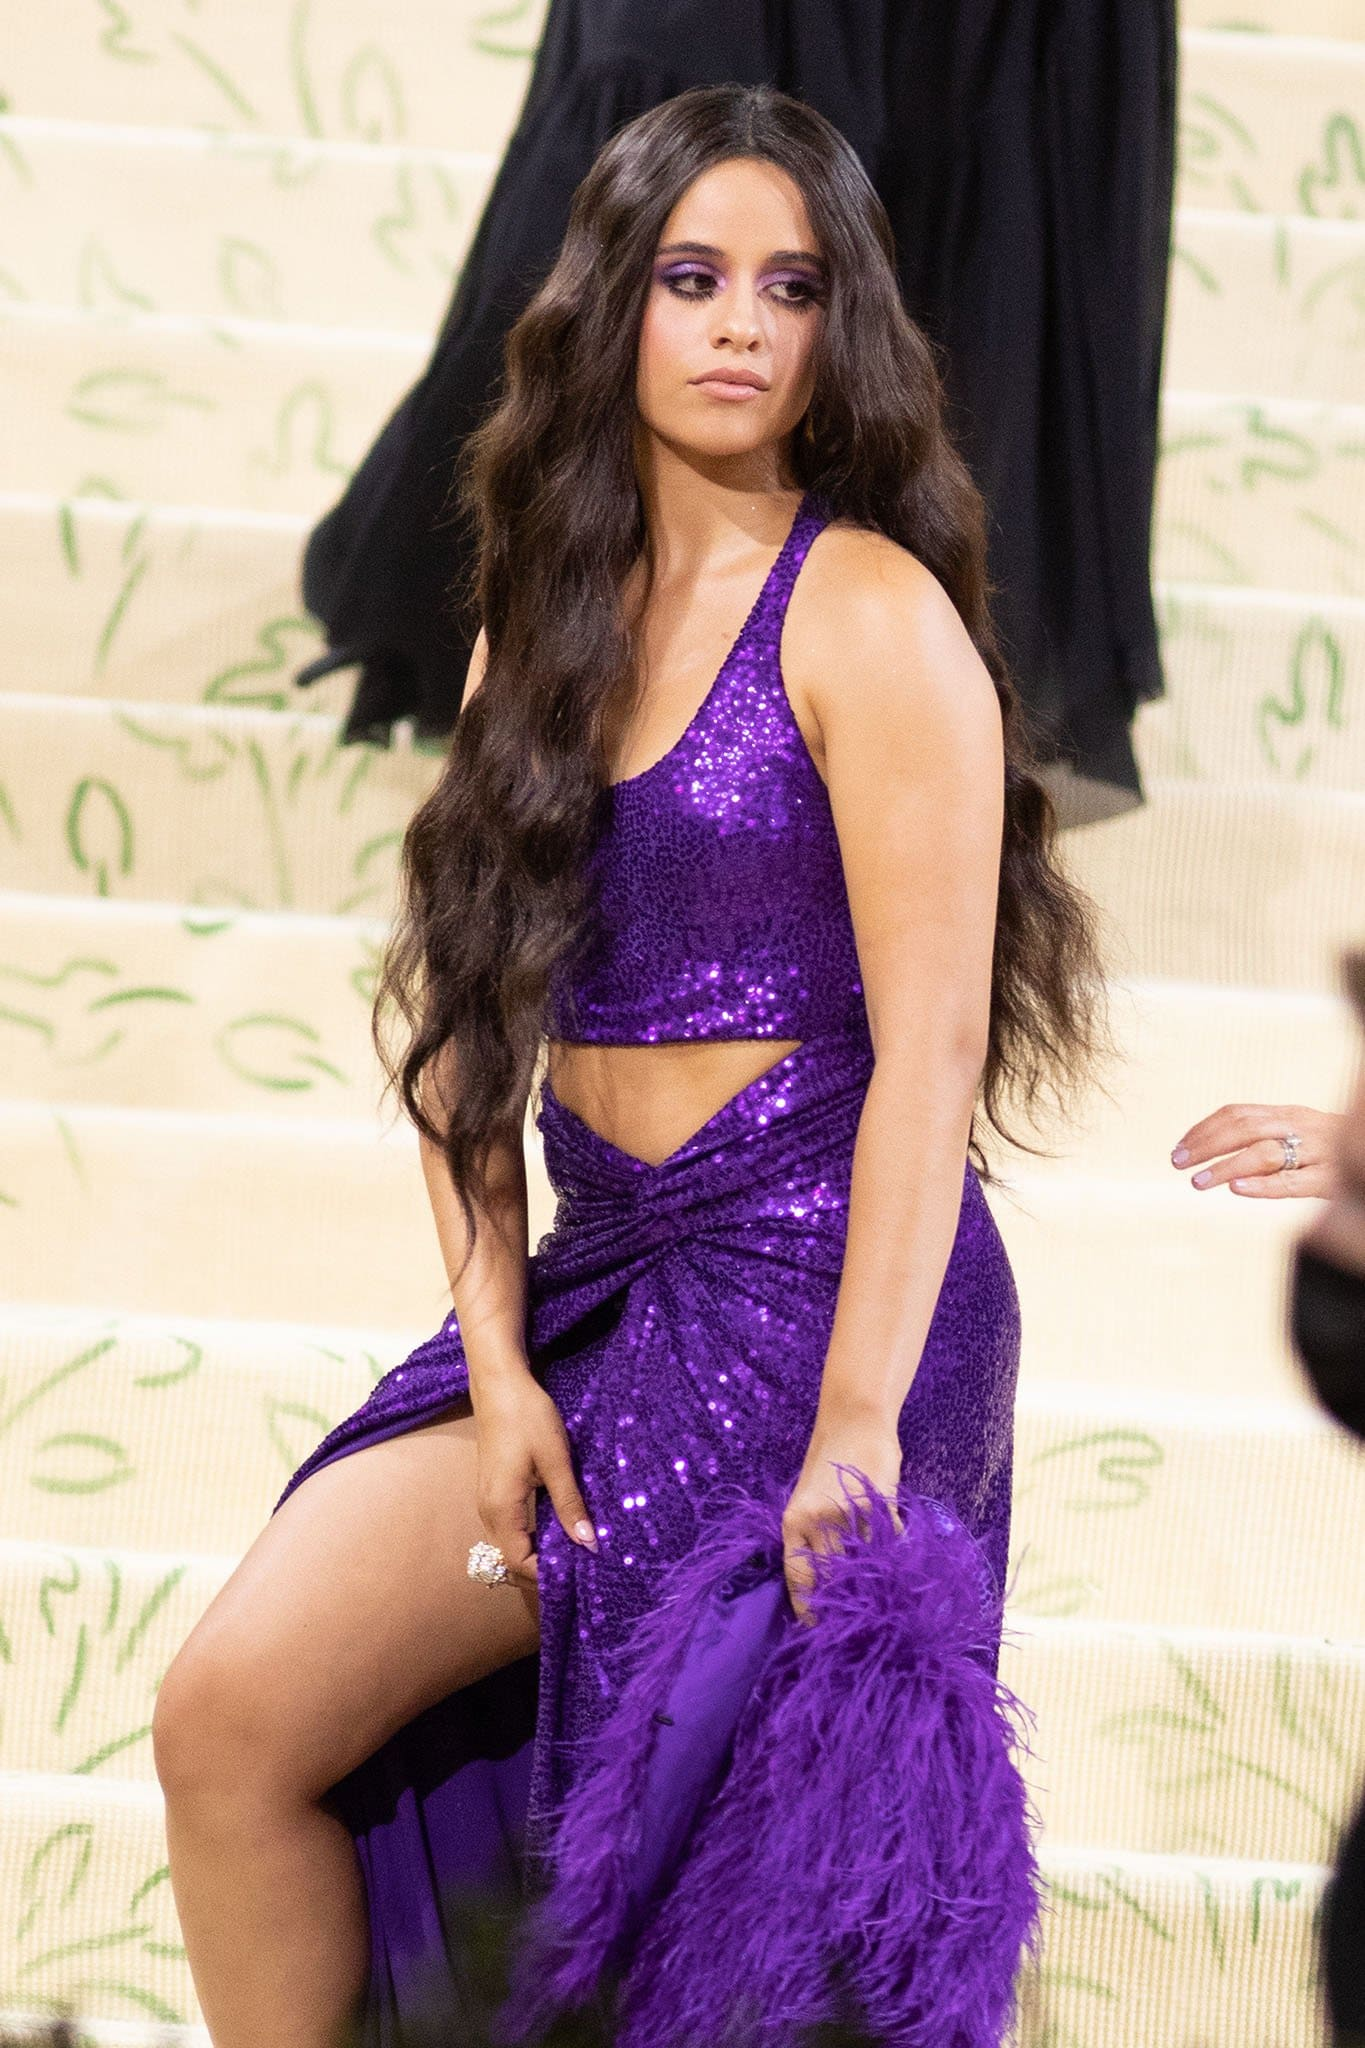 Camila Cabello accessorizes with David Webb jewelry and carries a purple clutch